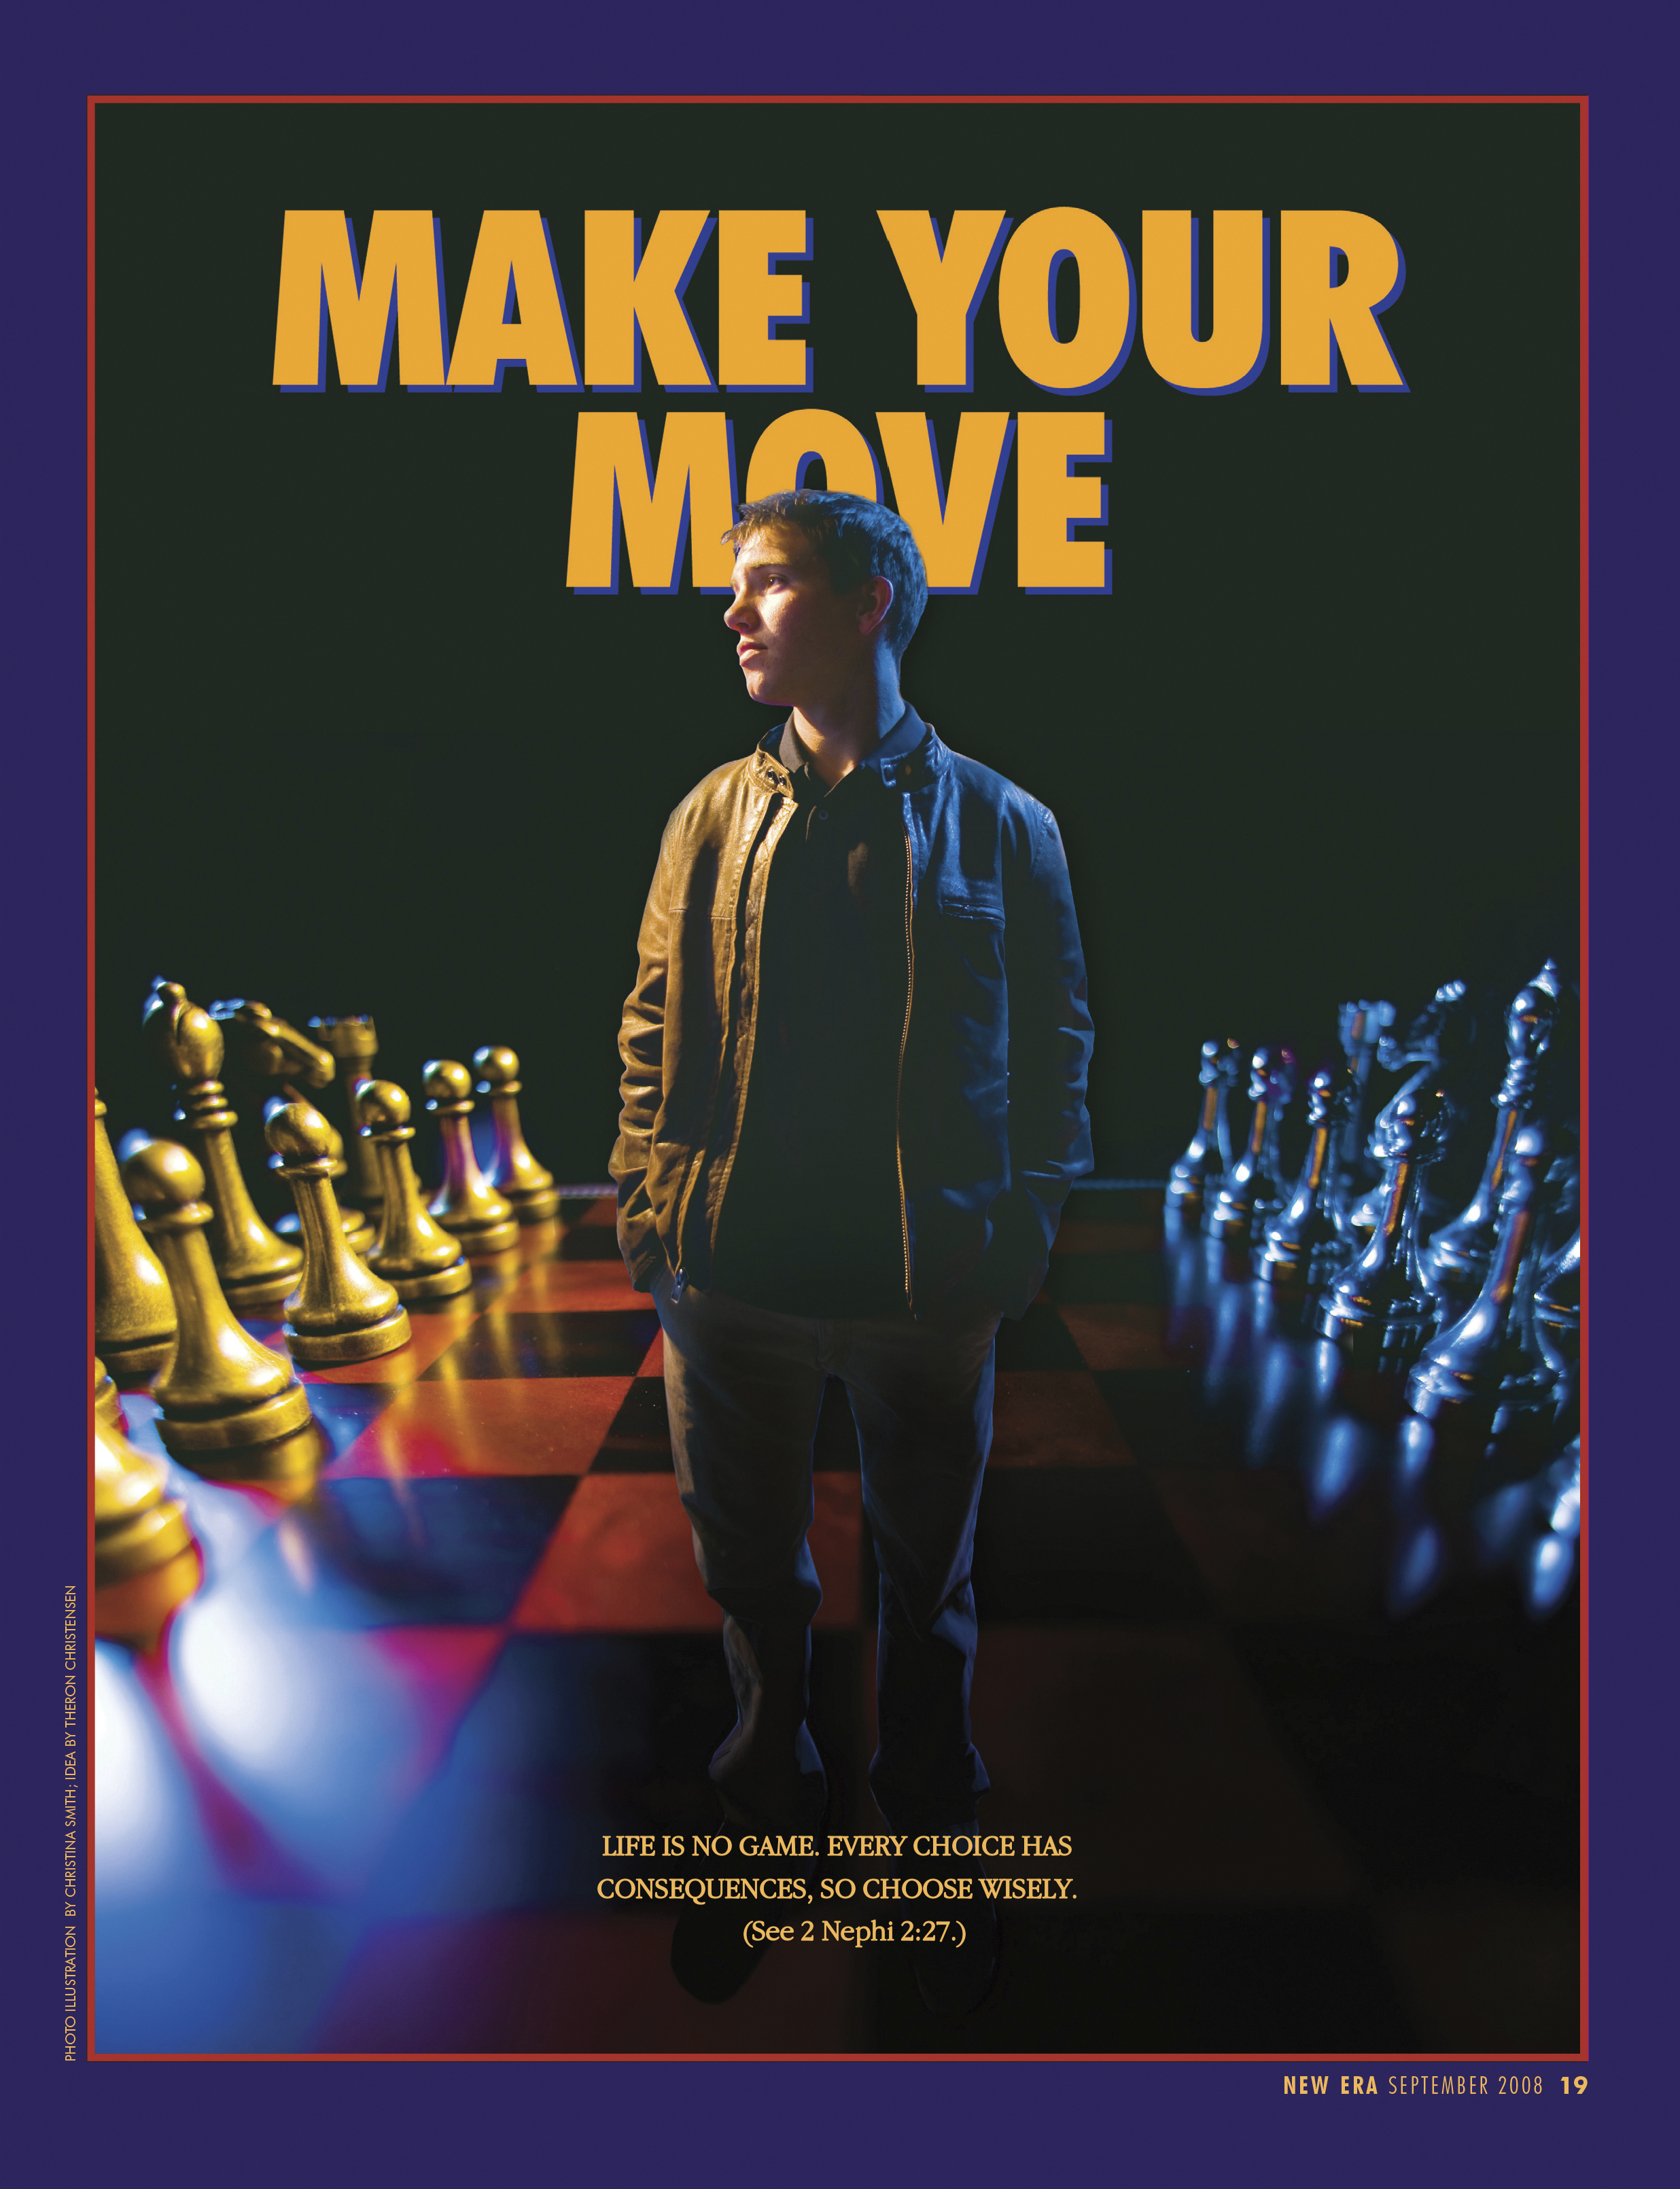 Make Your Move. Life is no game. Every choice has consequences, so choose wisely. (See 2 Nephi 2:27.) Sept. 2008 © undefined ipCode 1.